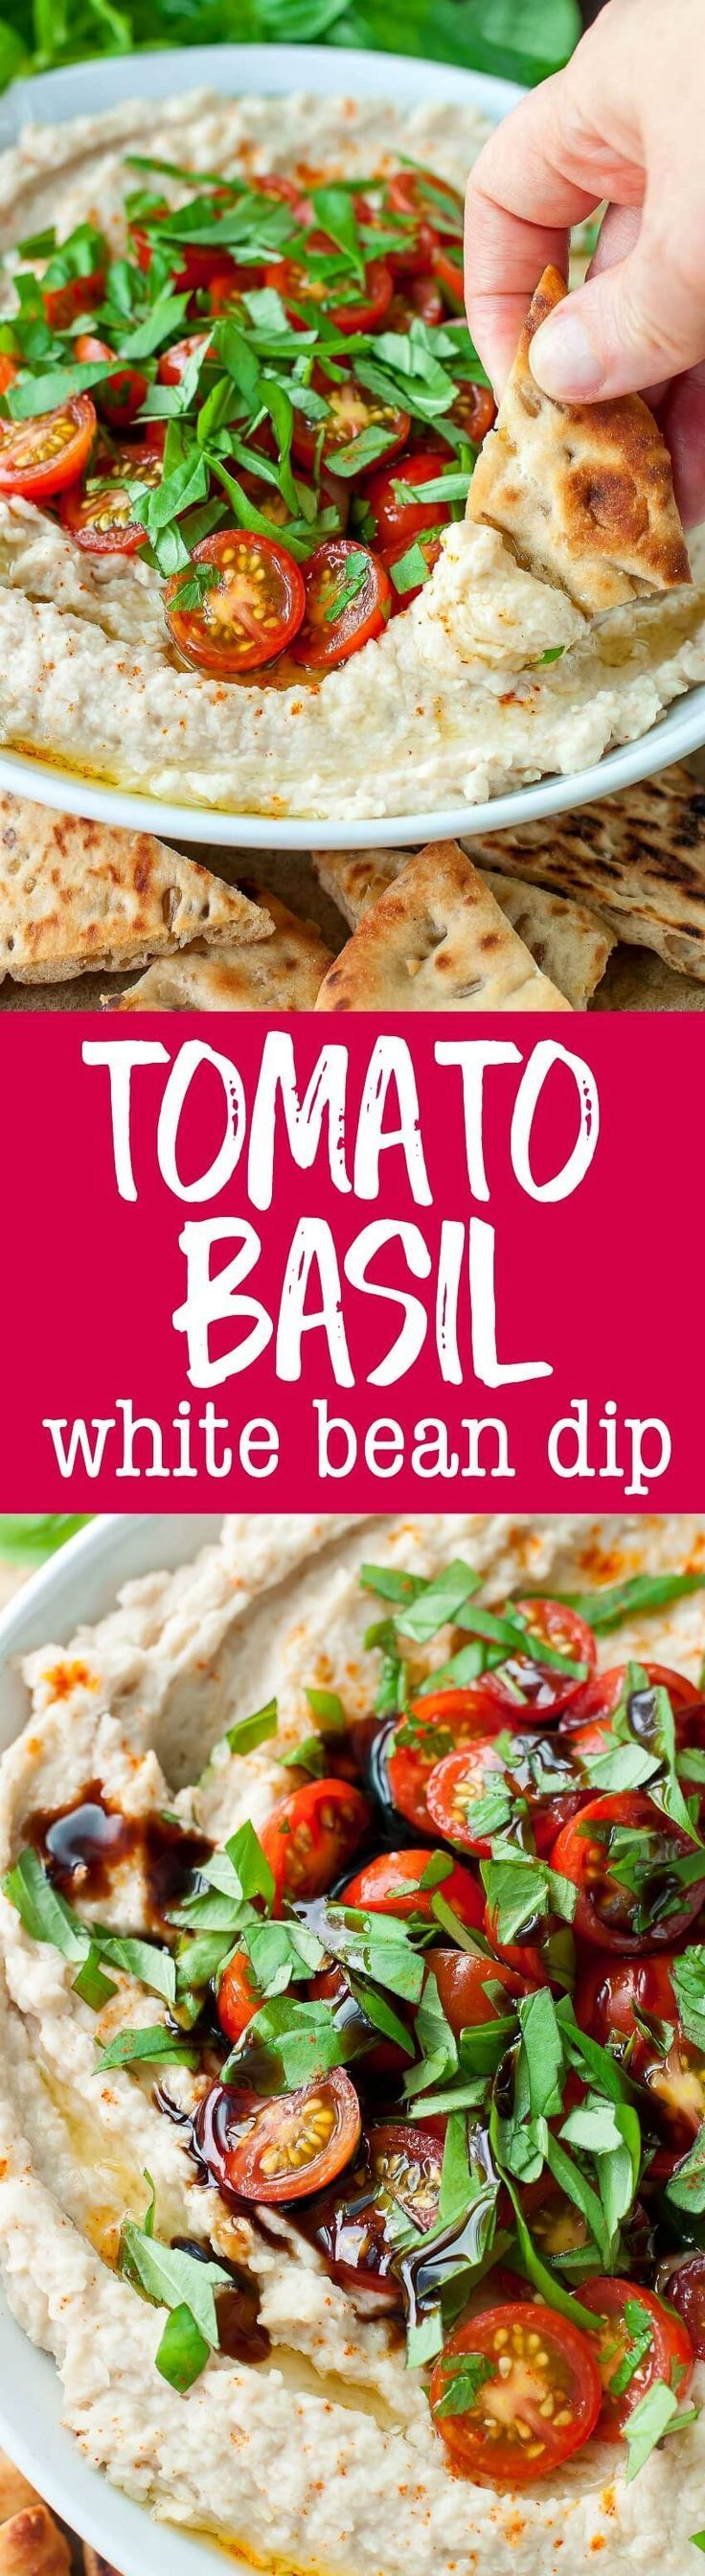 Snack in style with this healthy Tomato Basil White Bean Dip. It comes together in minutes and can be made in advance for easy peasy snacking,